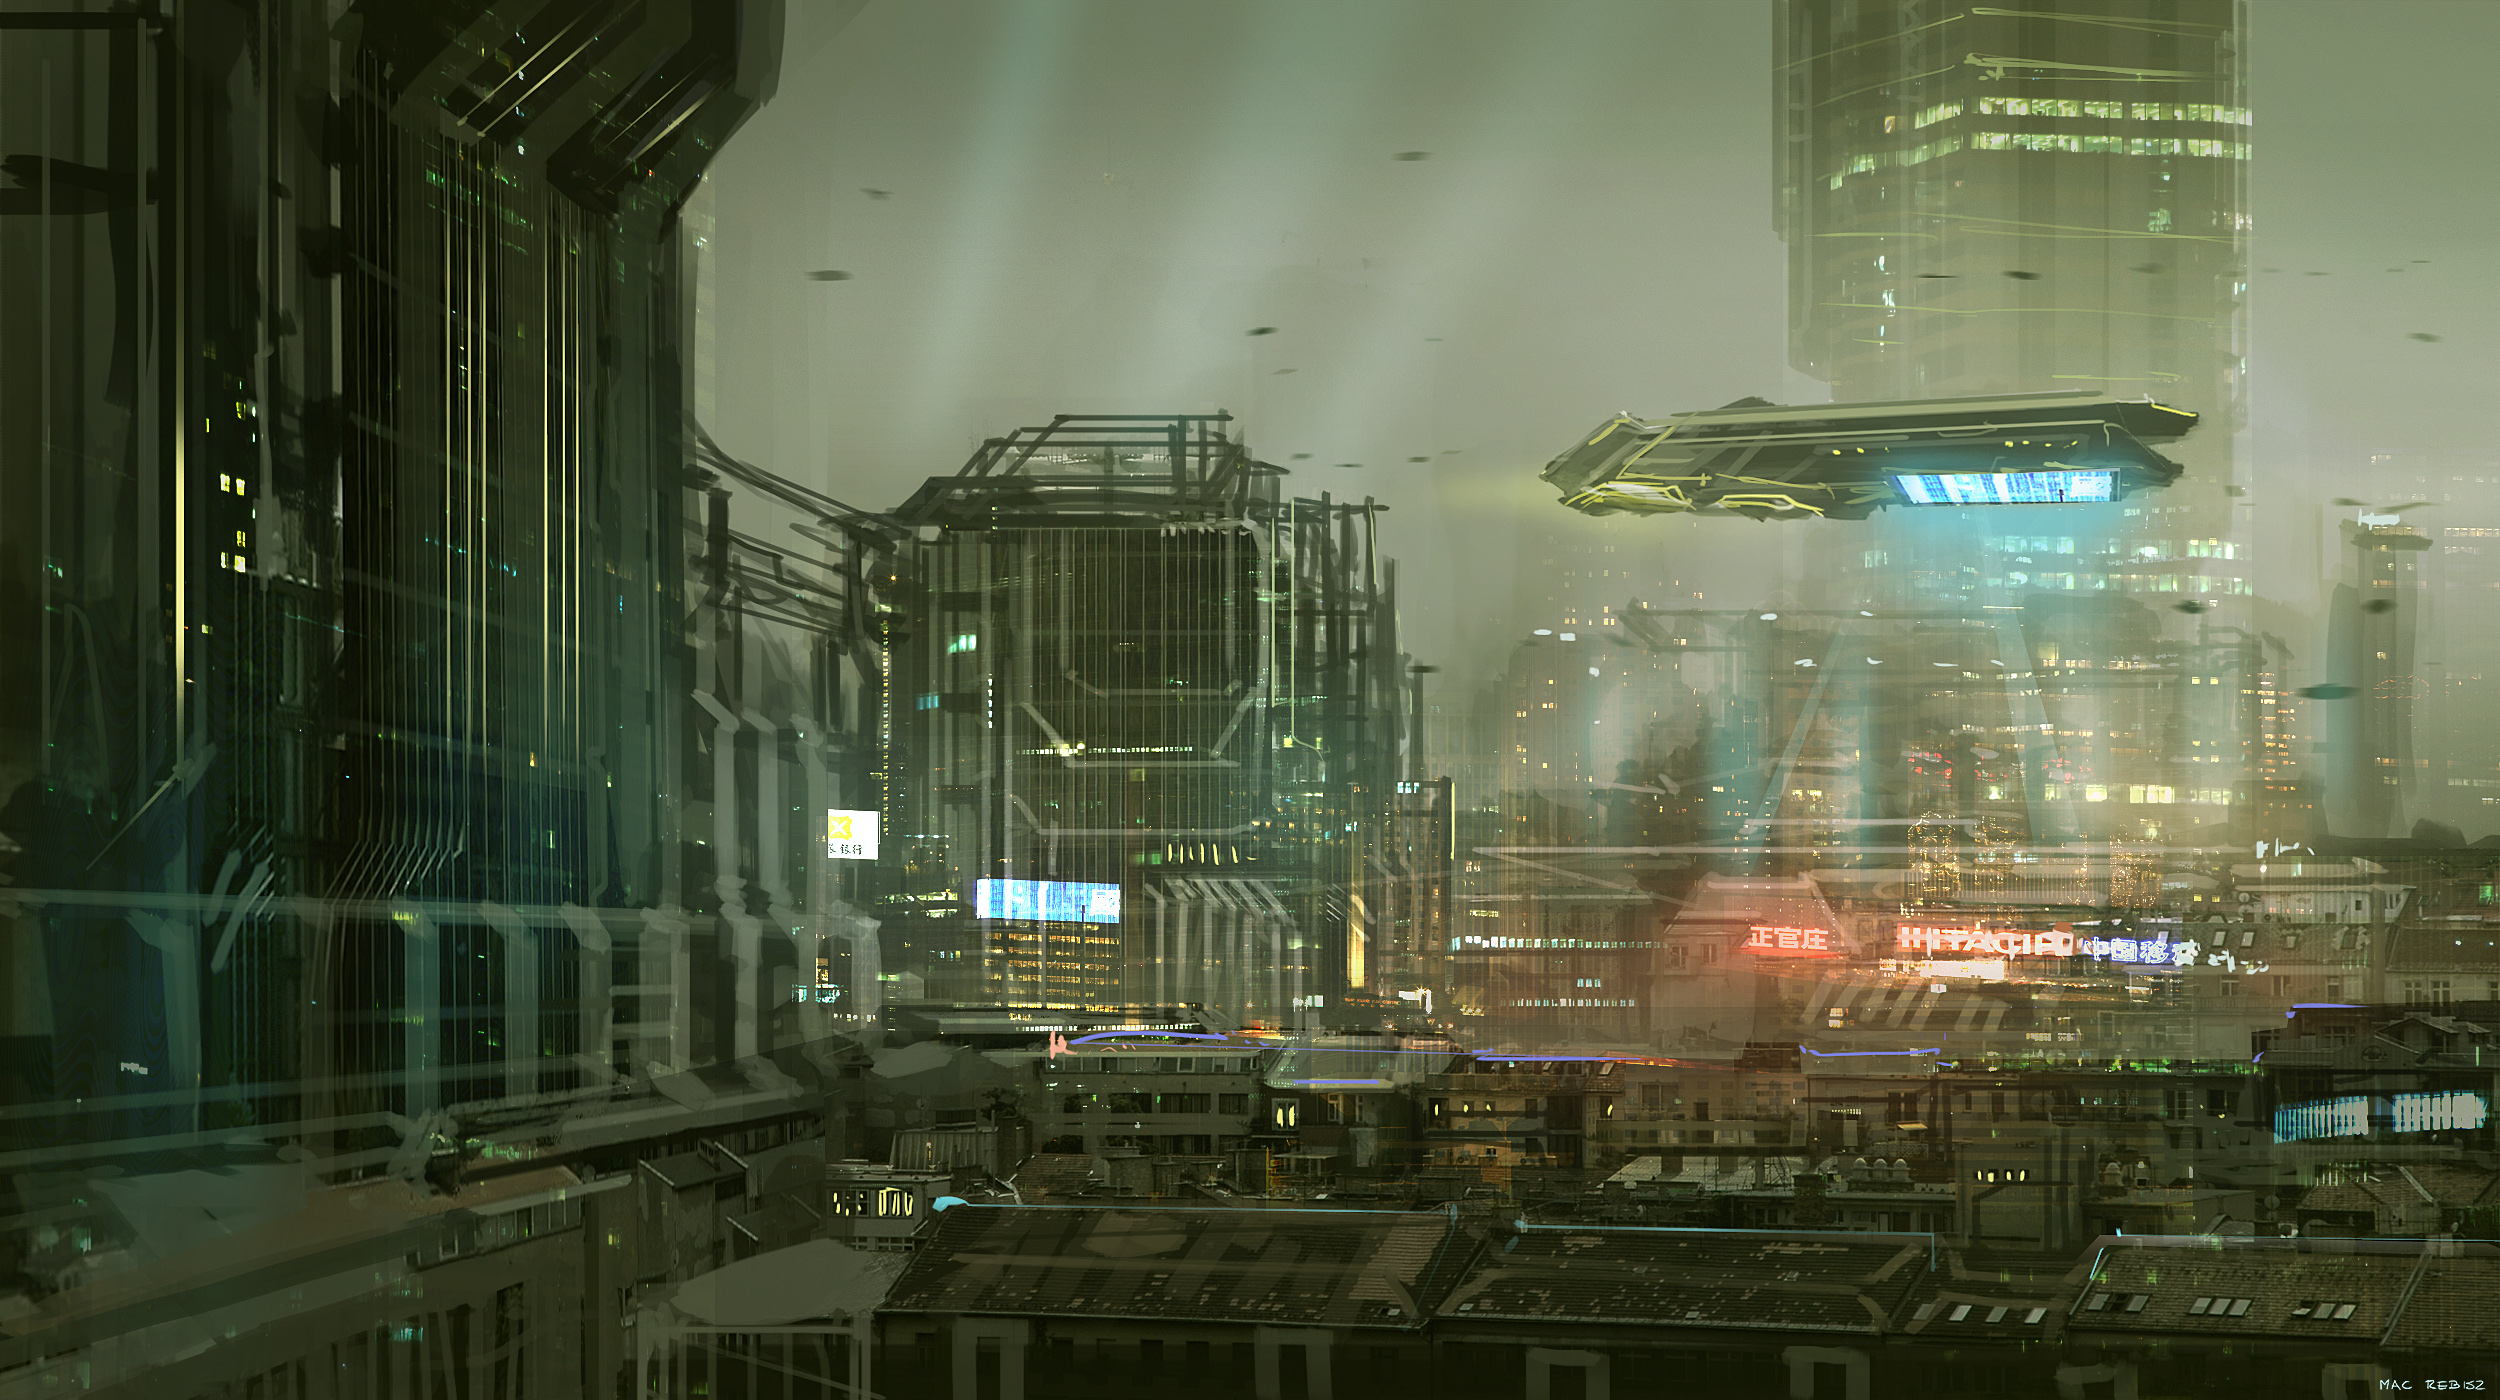 CoffeePainting: Sci-fi city by MacRebisz